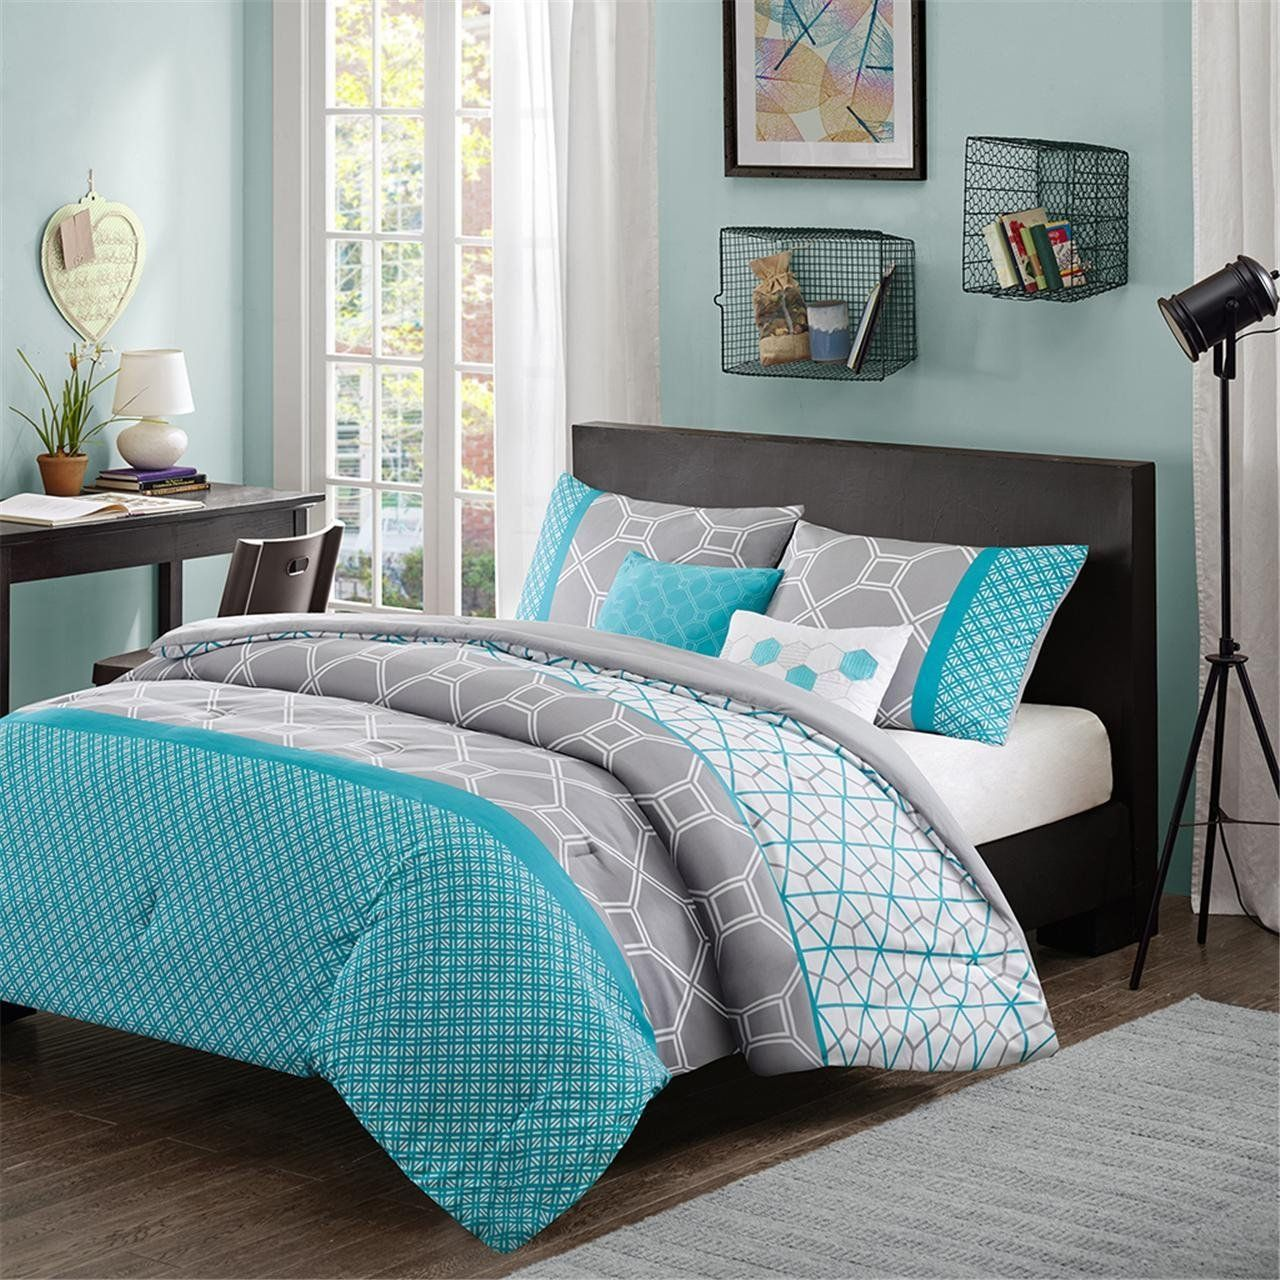 Best Comforter Sets | Full comforter sets, Twin comforter sets and ... : full quilt sets - Adamdwight.com